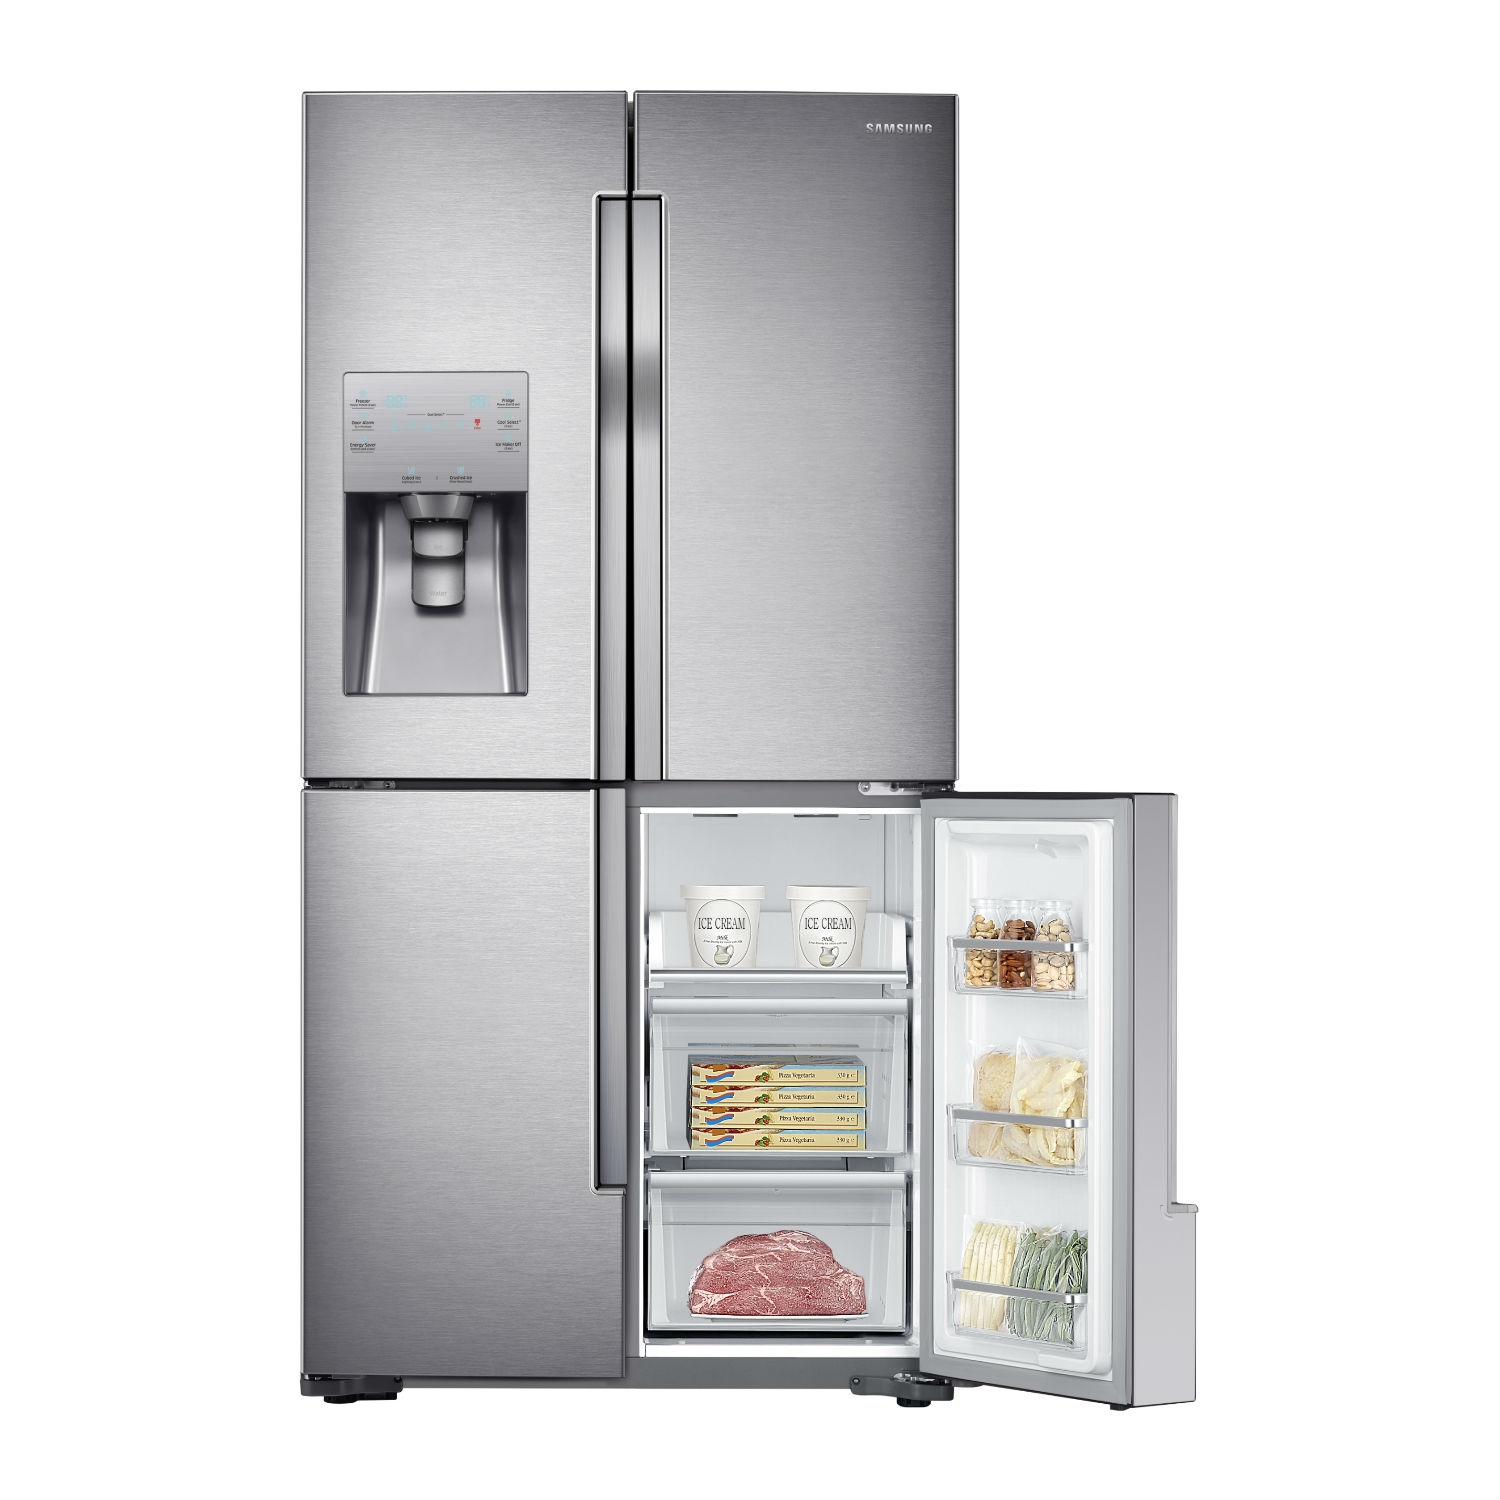 Samsung American Fridge Freezer - Stainless Steel - 7